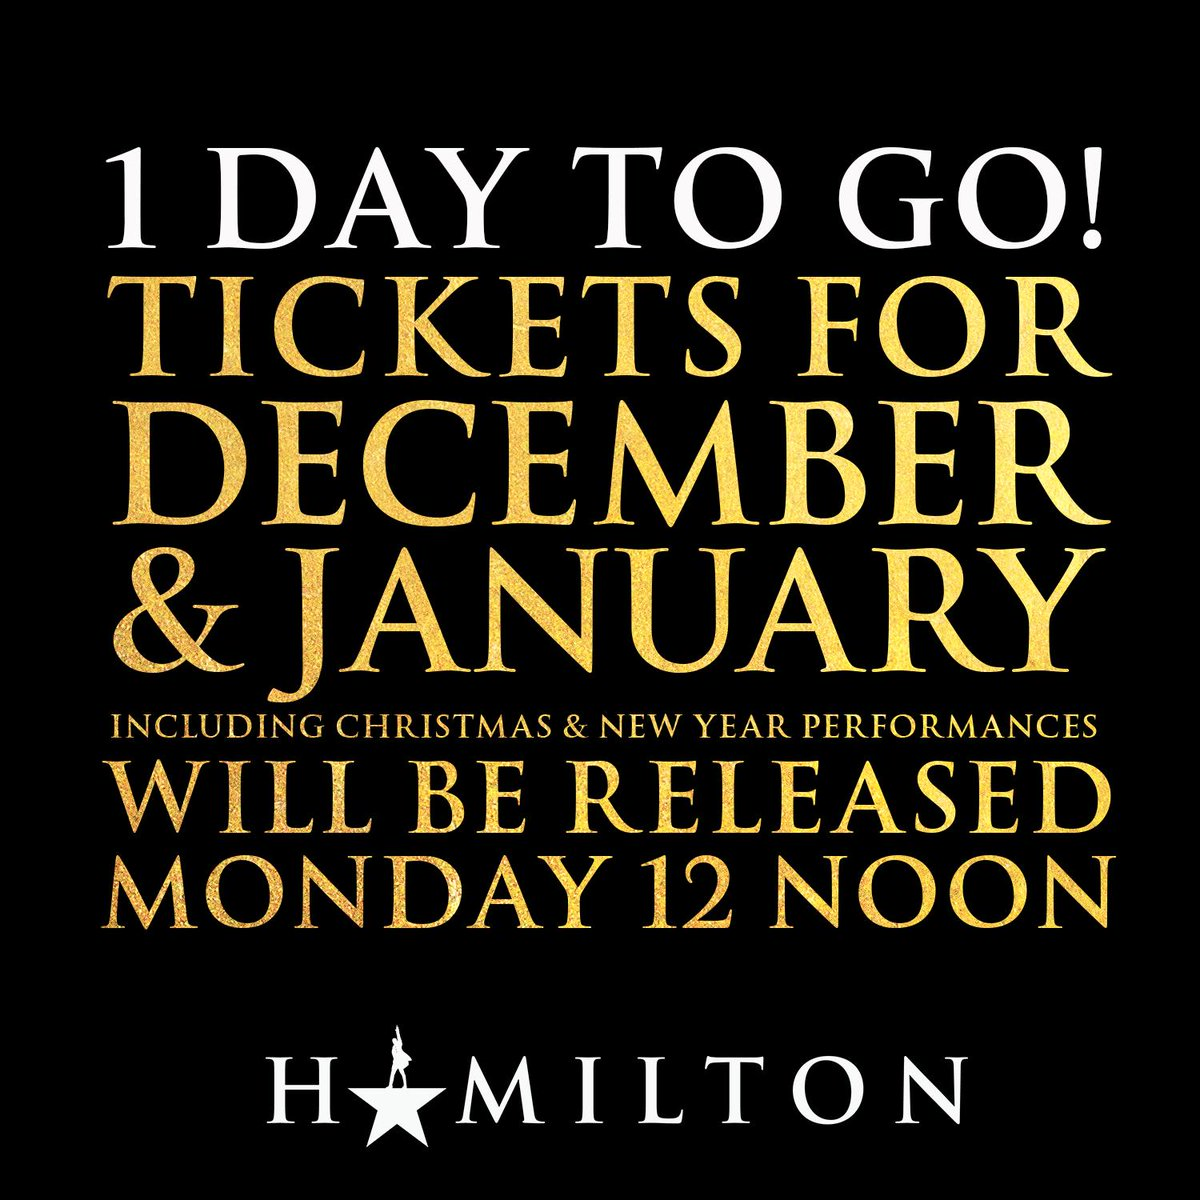 #HamiltonLDN tickets for December 2019 & January 2020 including Christmas and New Year performances will be released tomorrow at 12 noon.